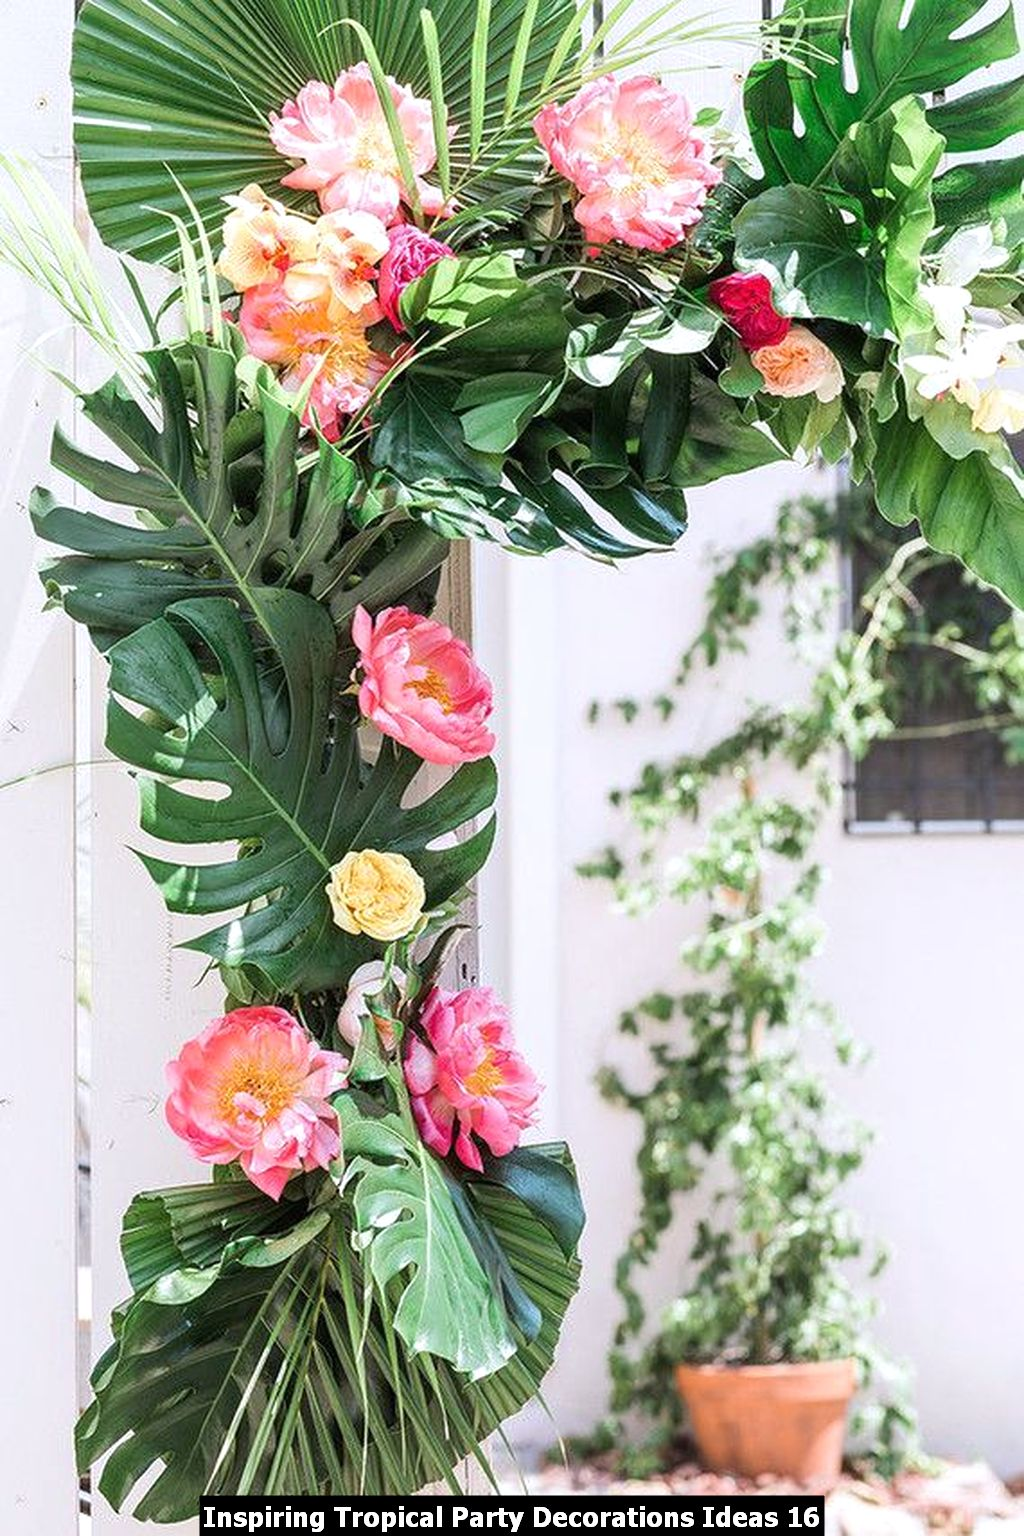 Inspiring Tropical Party Decorations Ideas 16